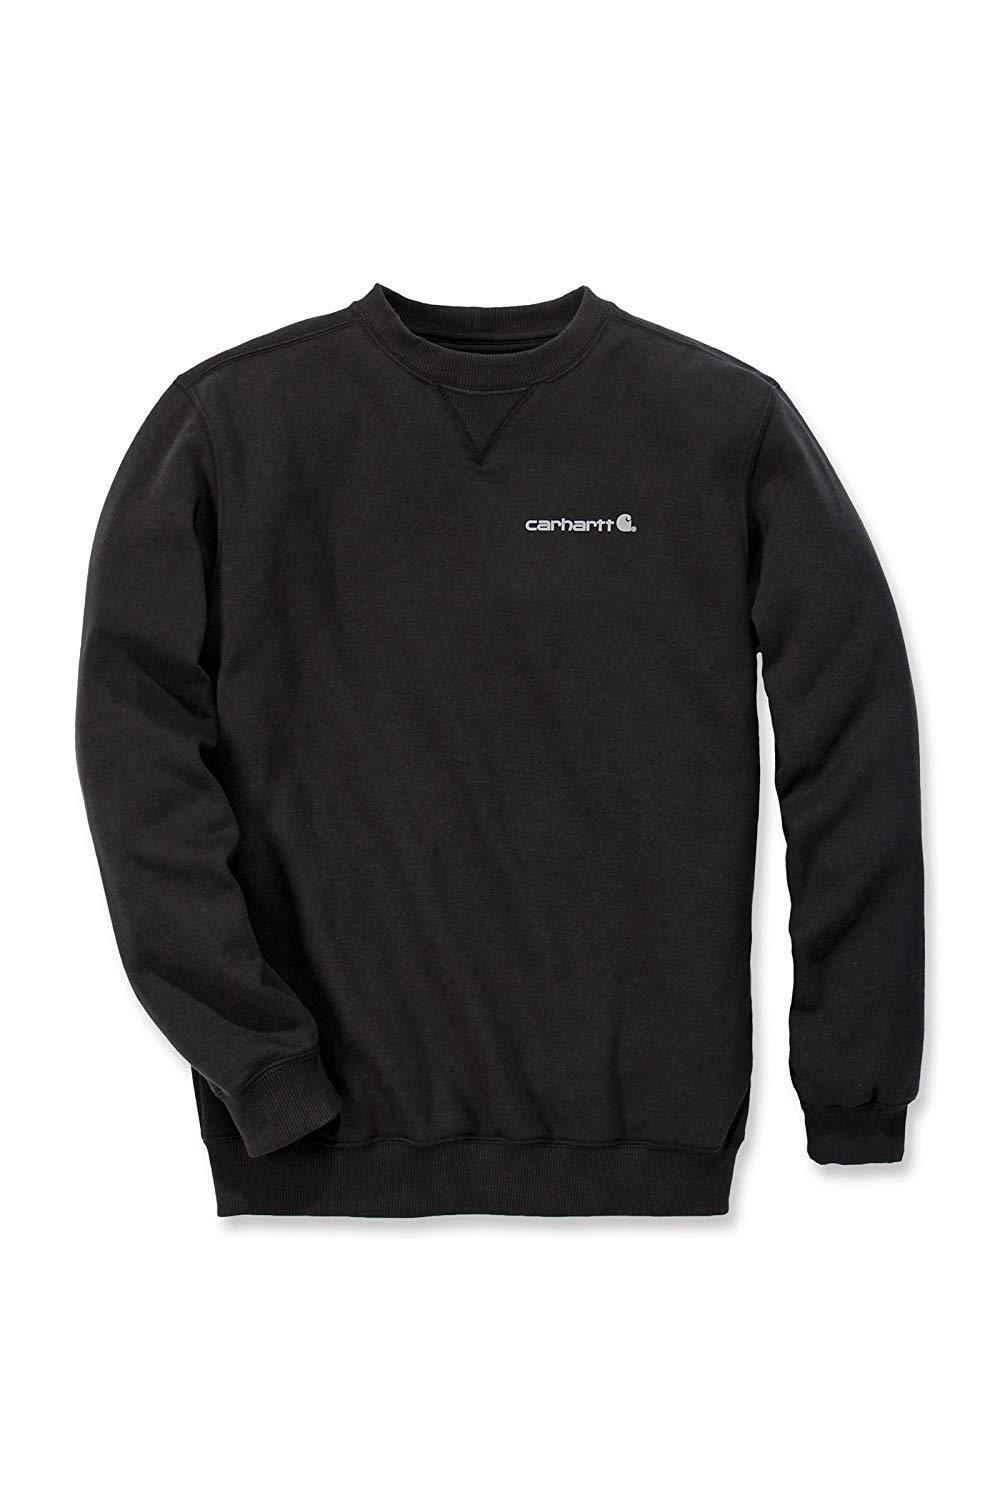 Carhartt 103307 Men's Sweater Graphic